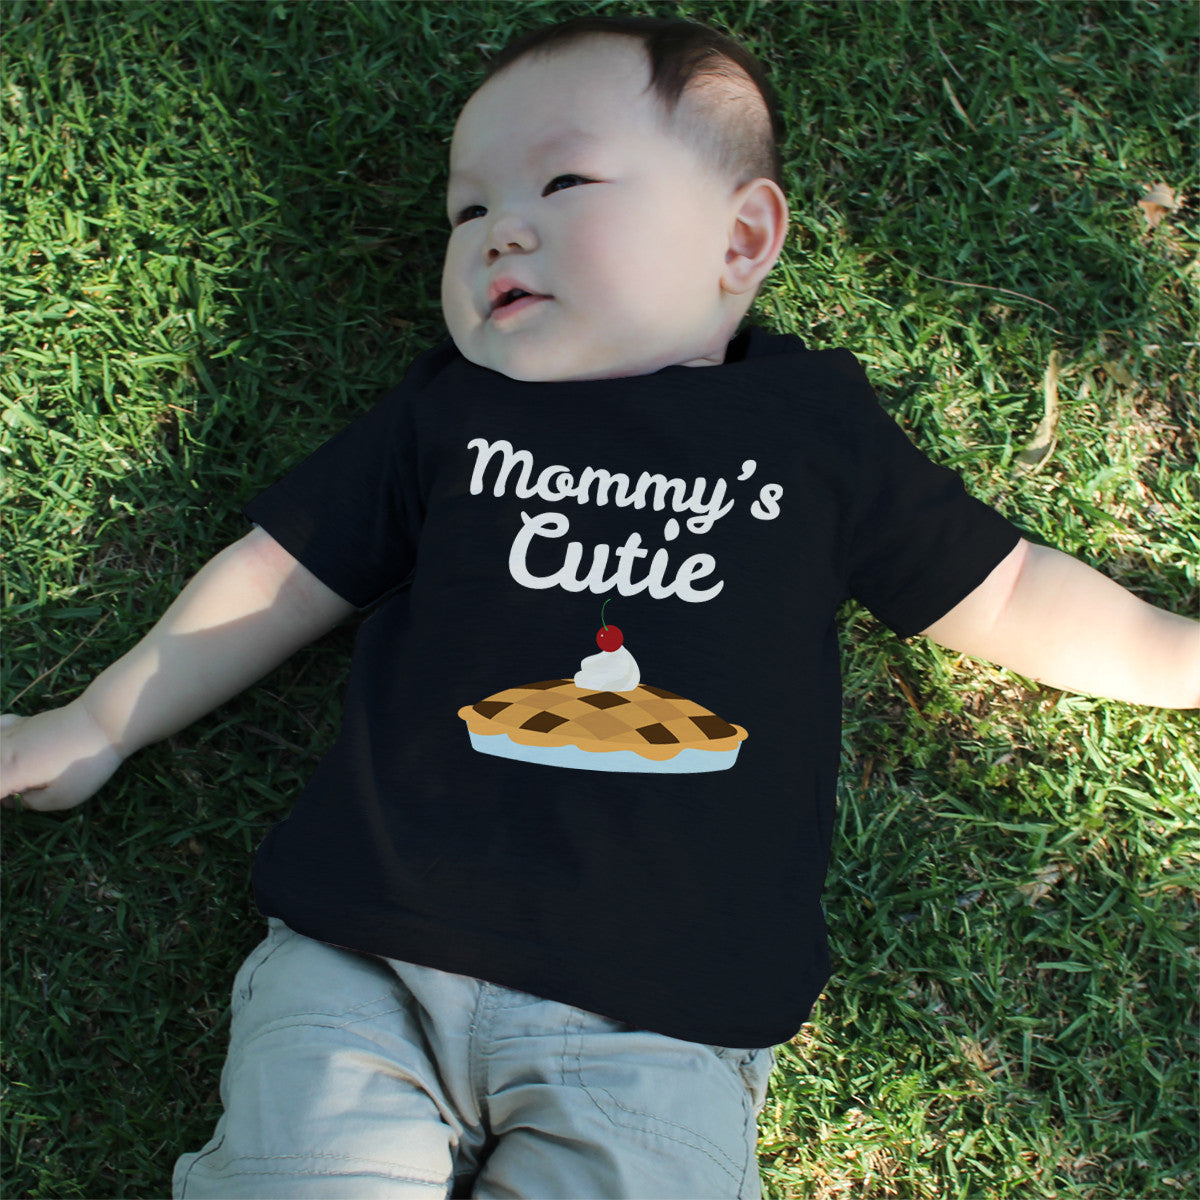 Black t shirt for babies -  Mommy S Cutie Pie Baby Tee Cute Infant Black T Shirt Gift For Baby Shower 365inlove